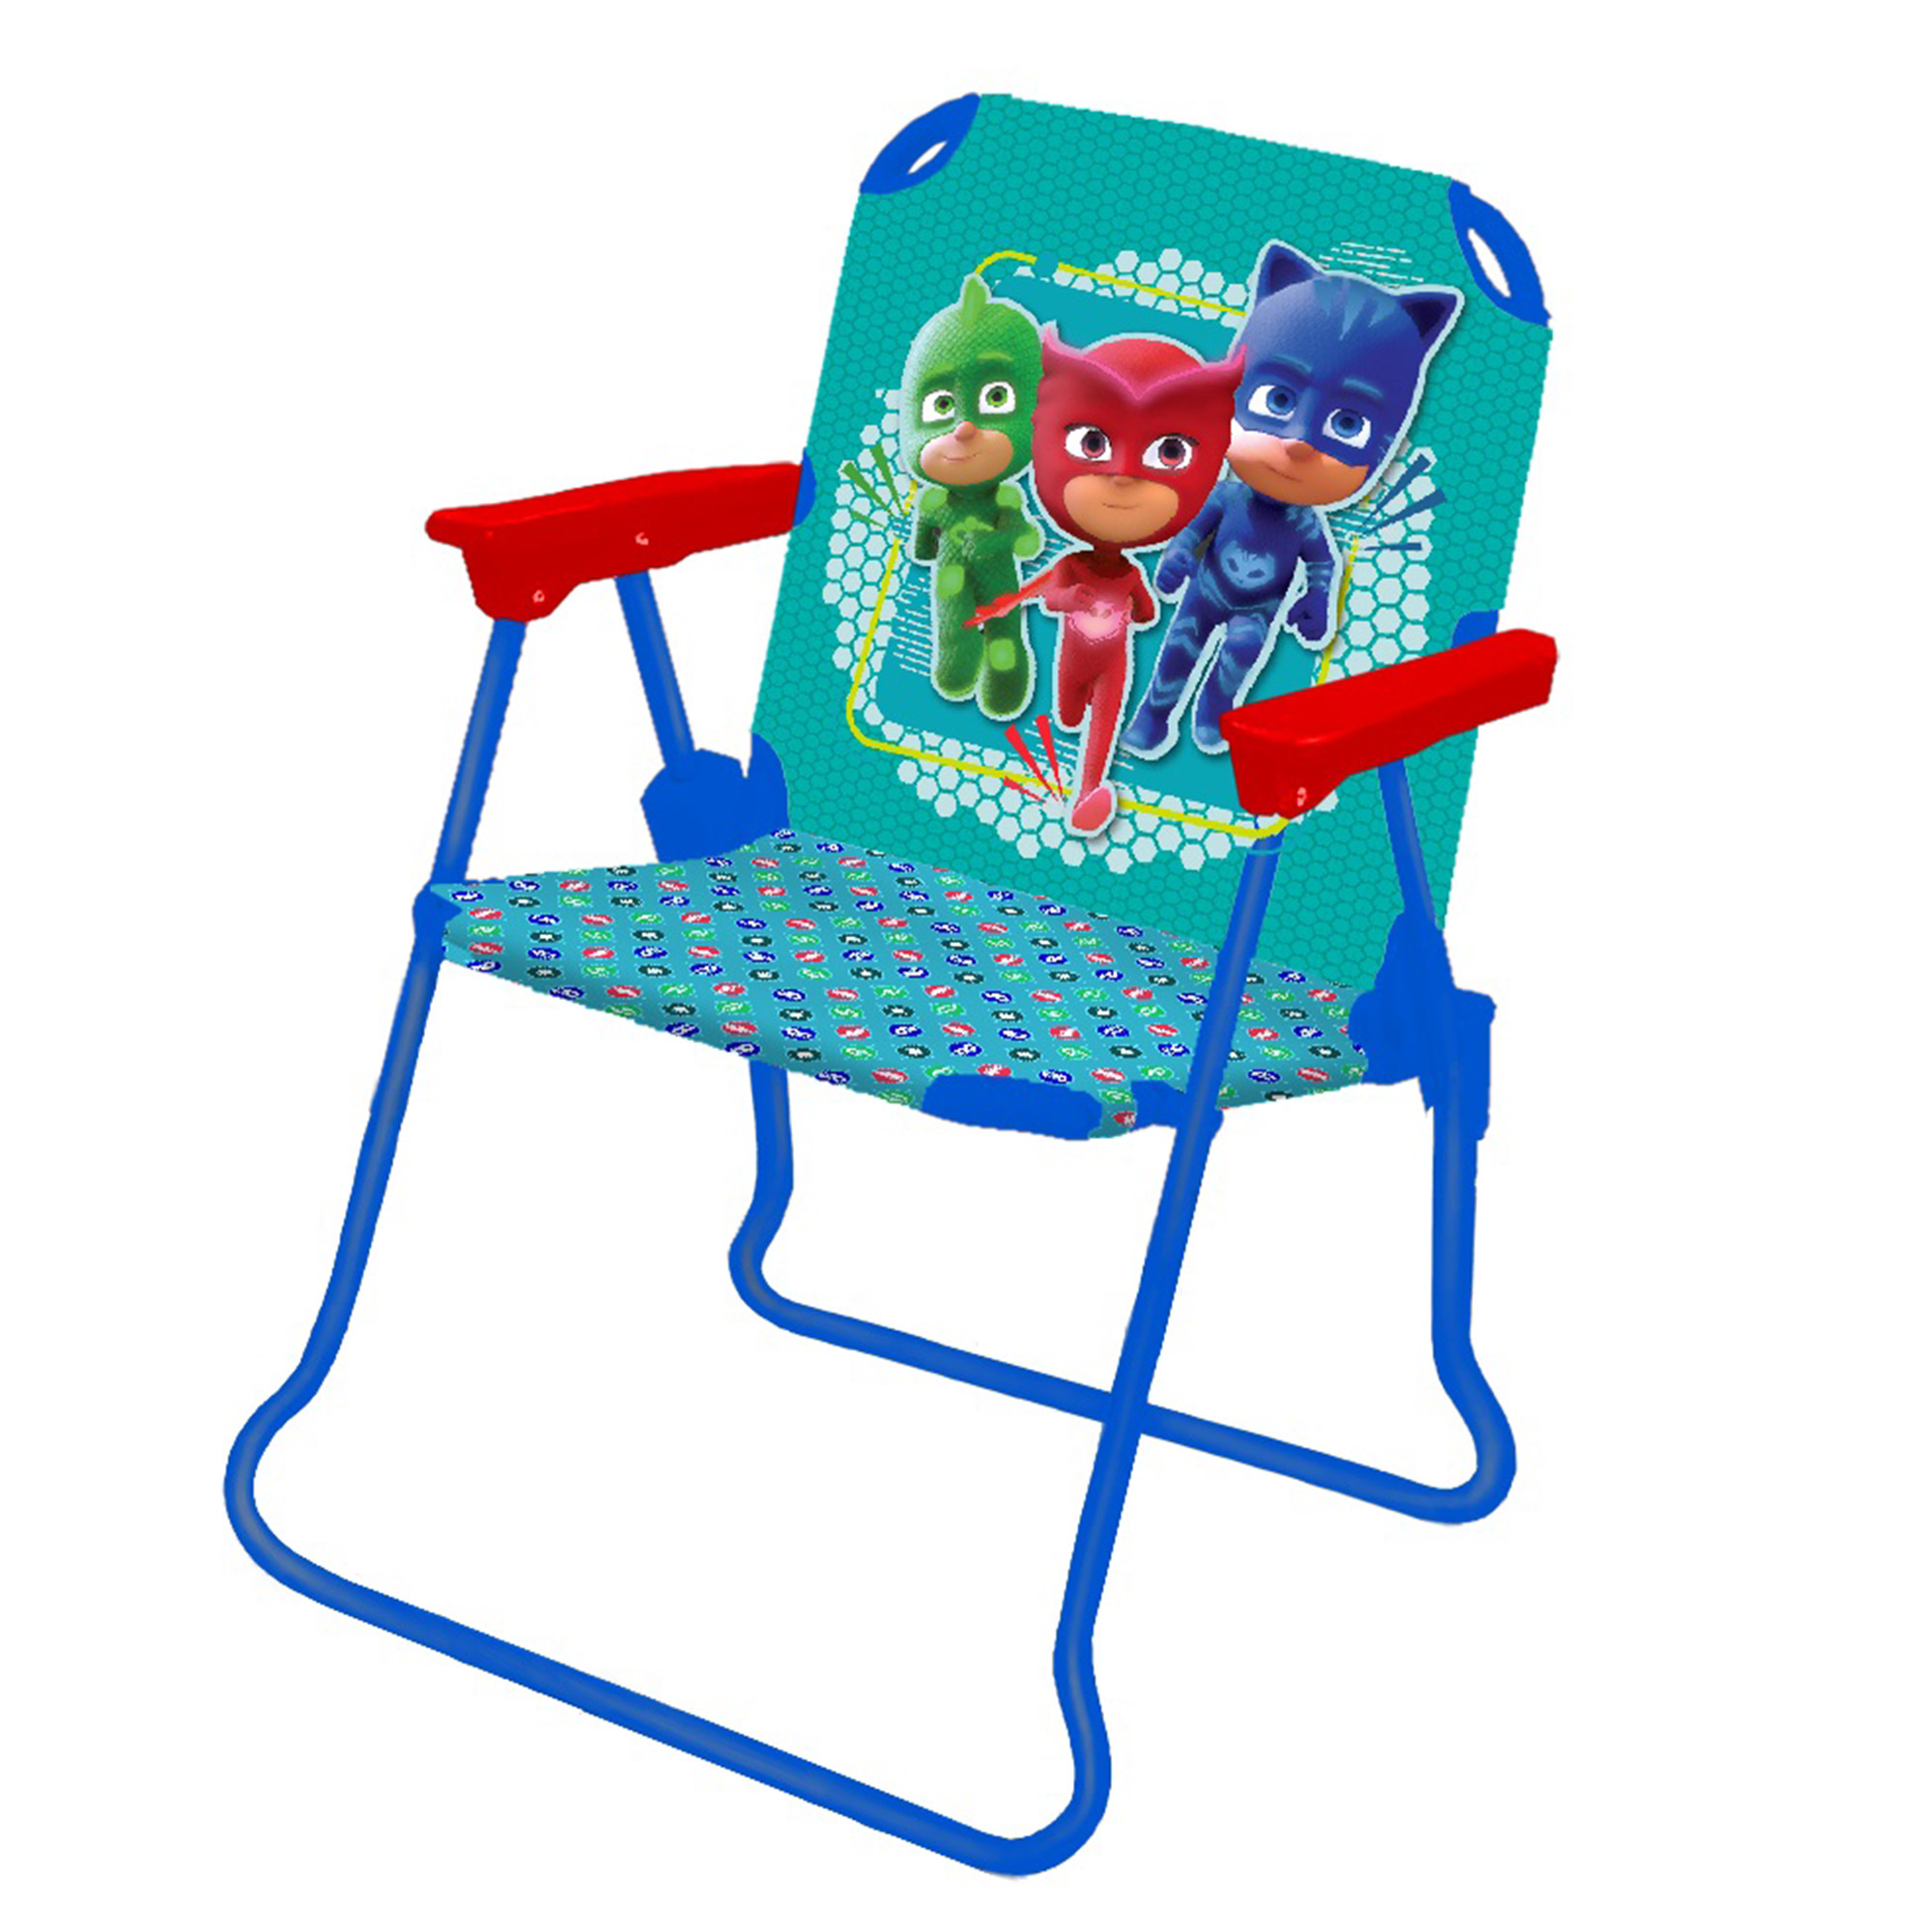 PJ Masks Patio Chair